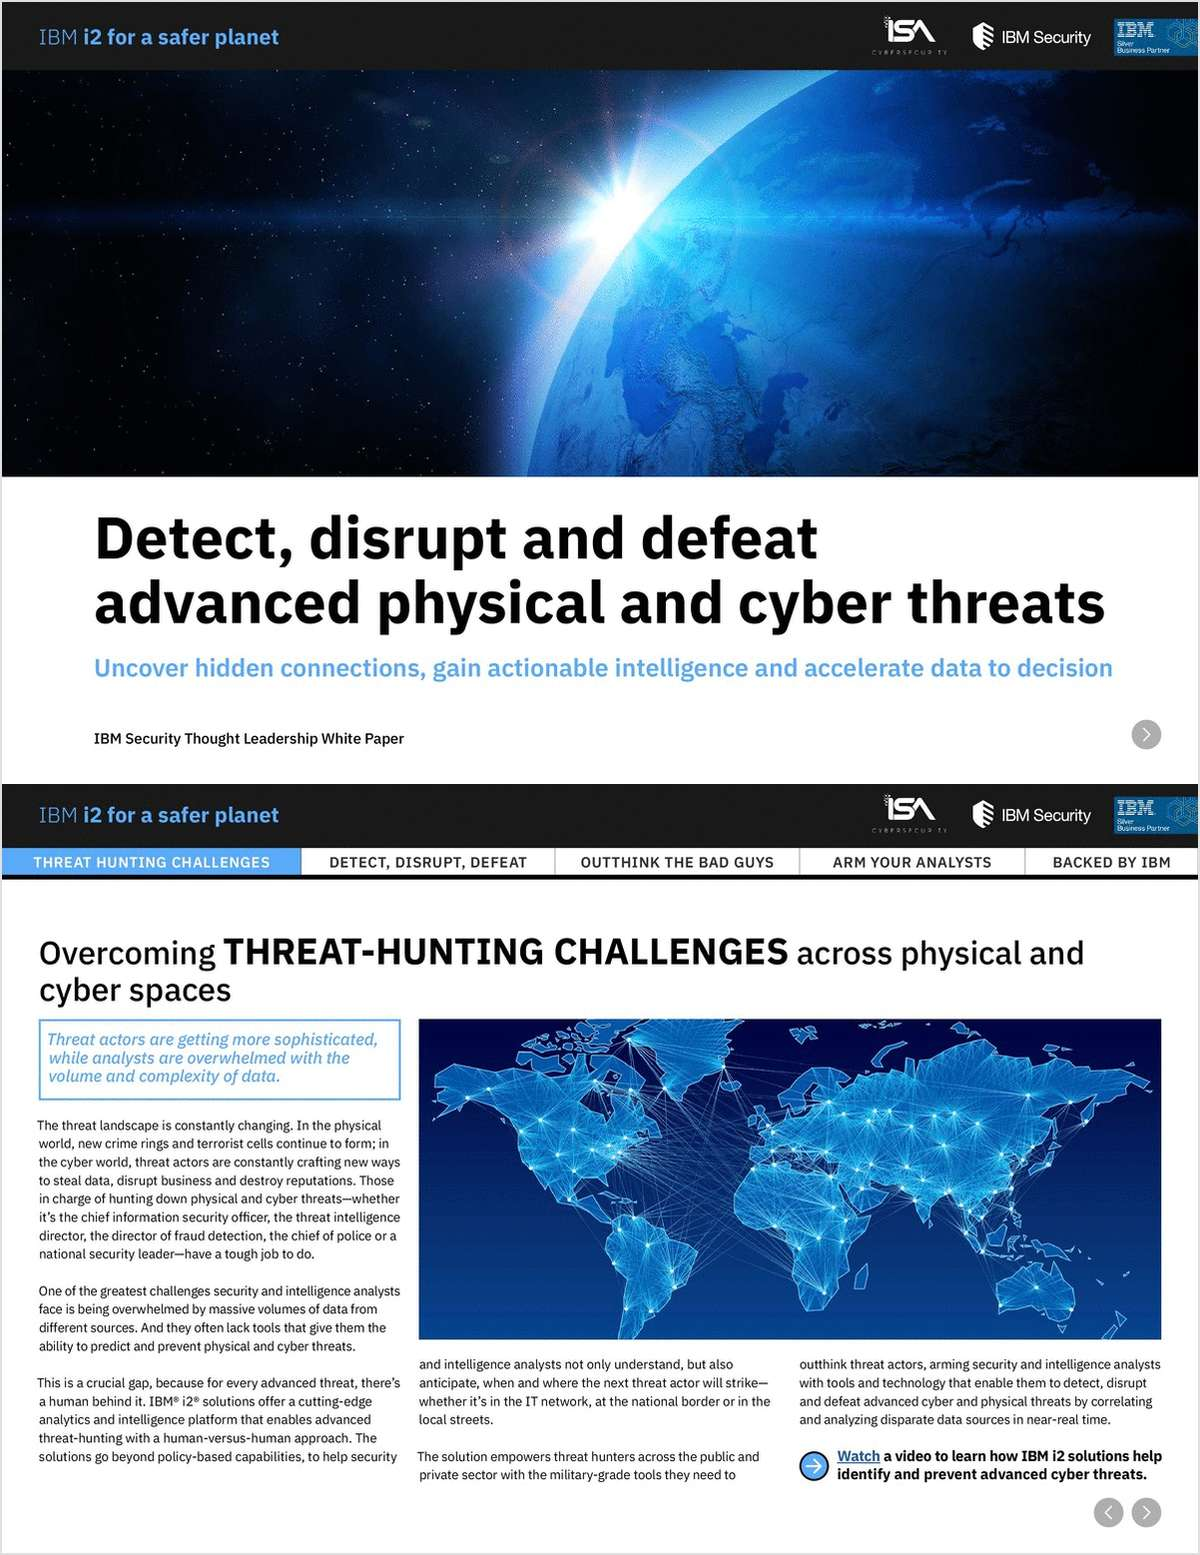 Detect, disrupt and defeat advanced physical and cyber threats